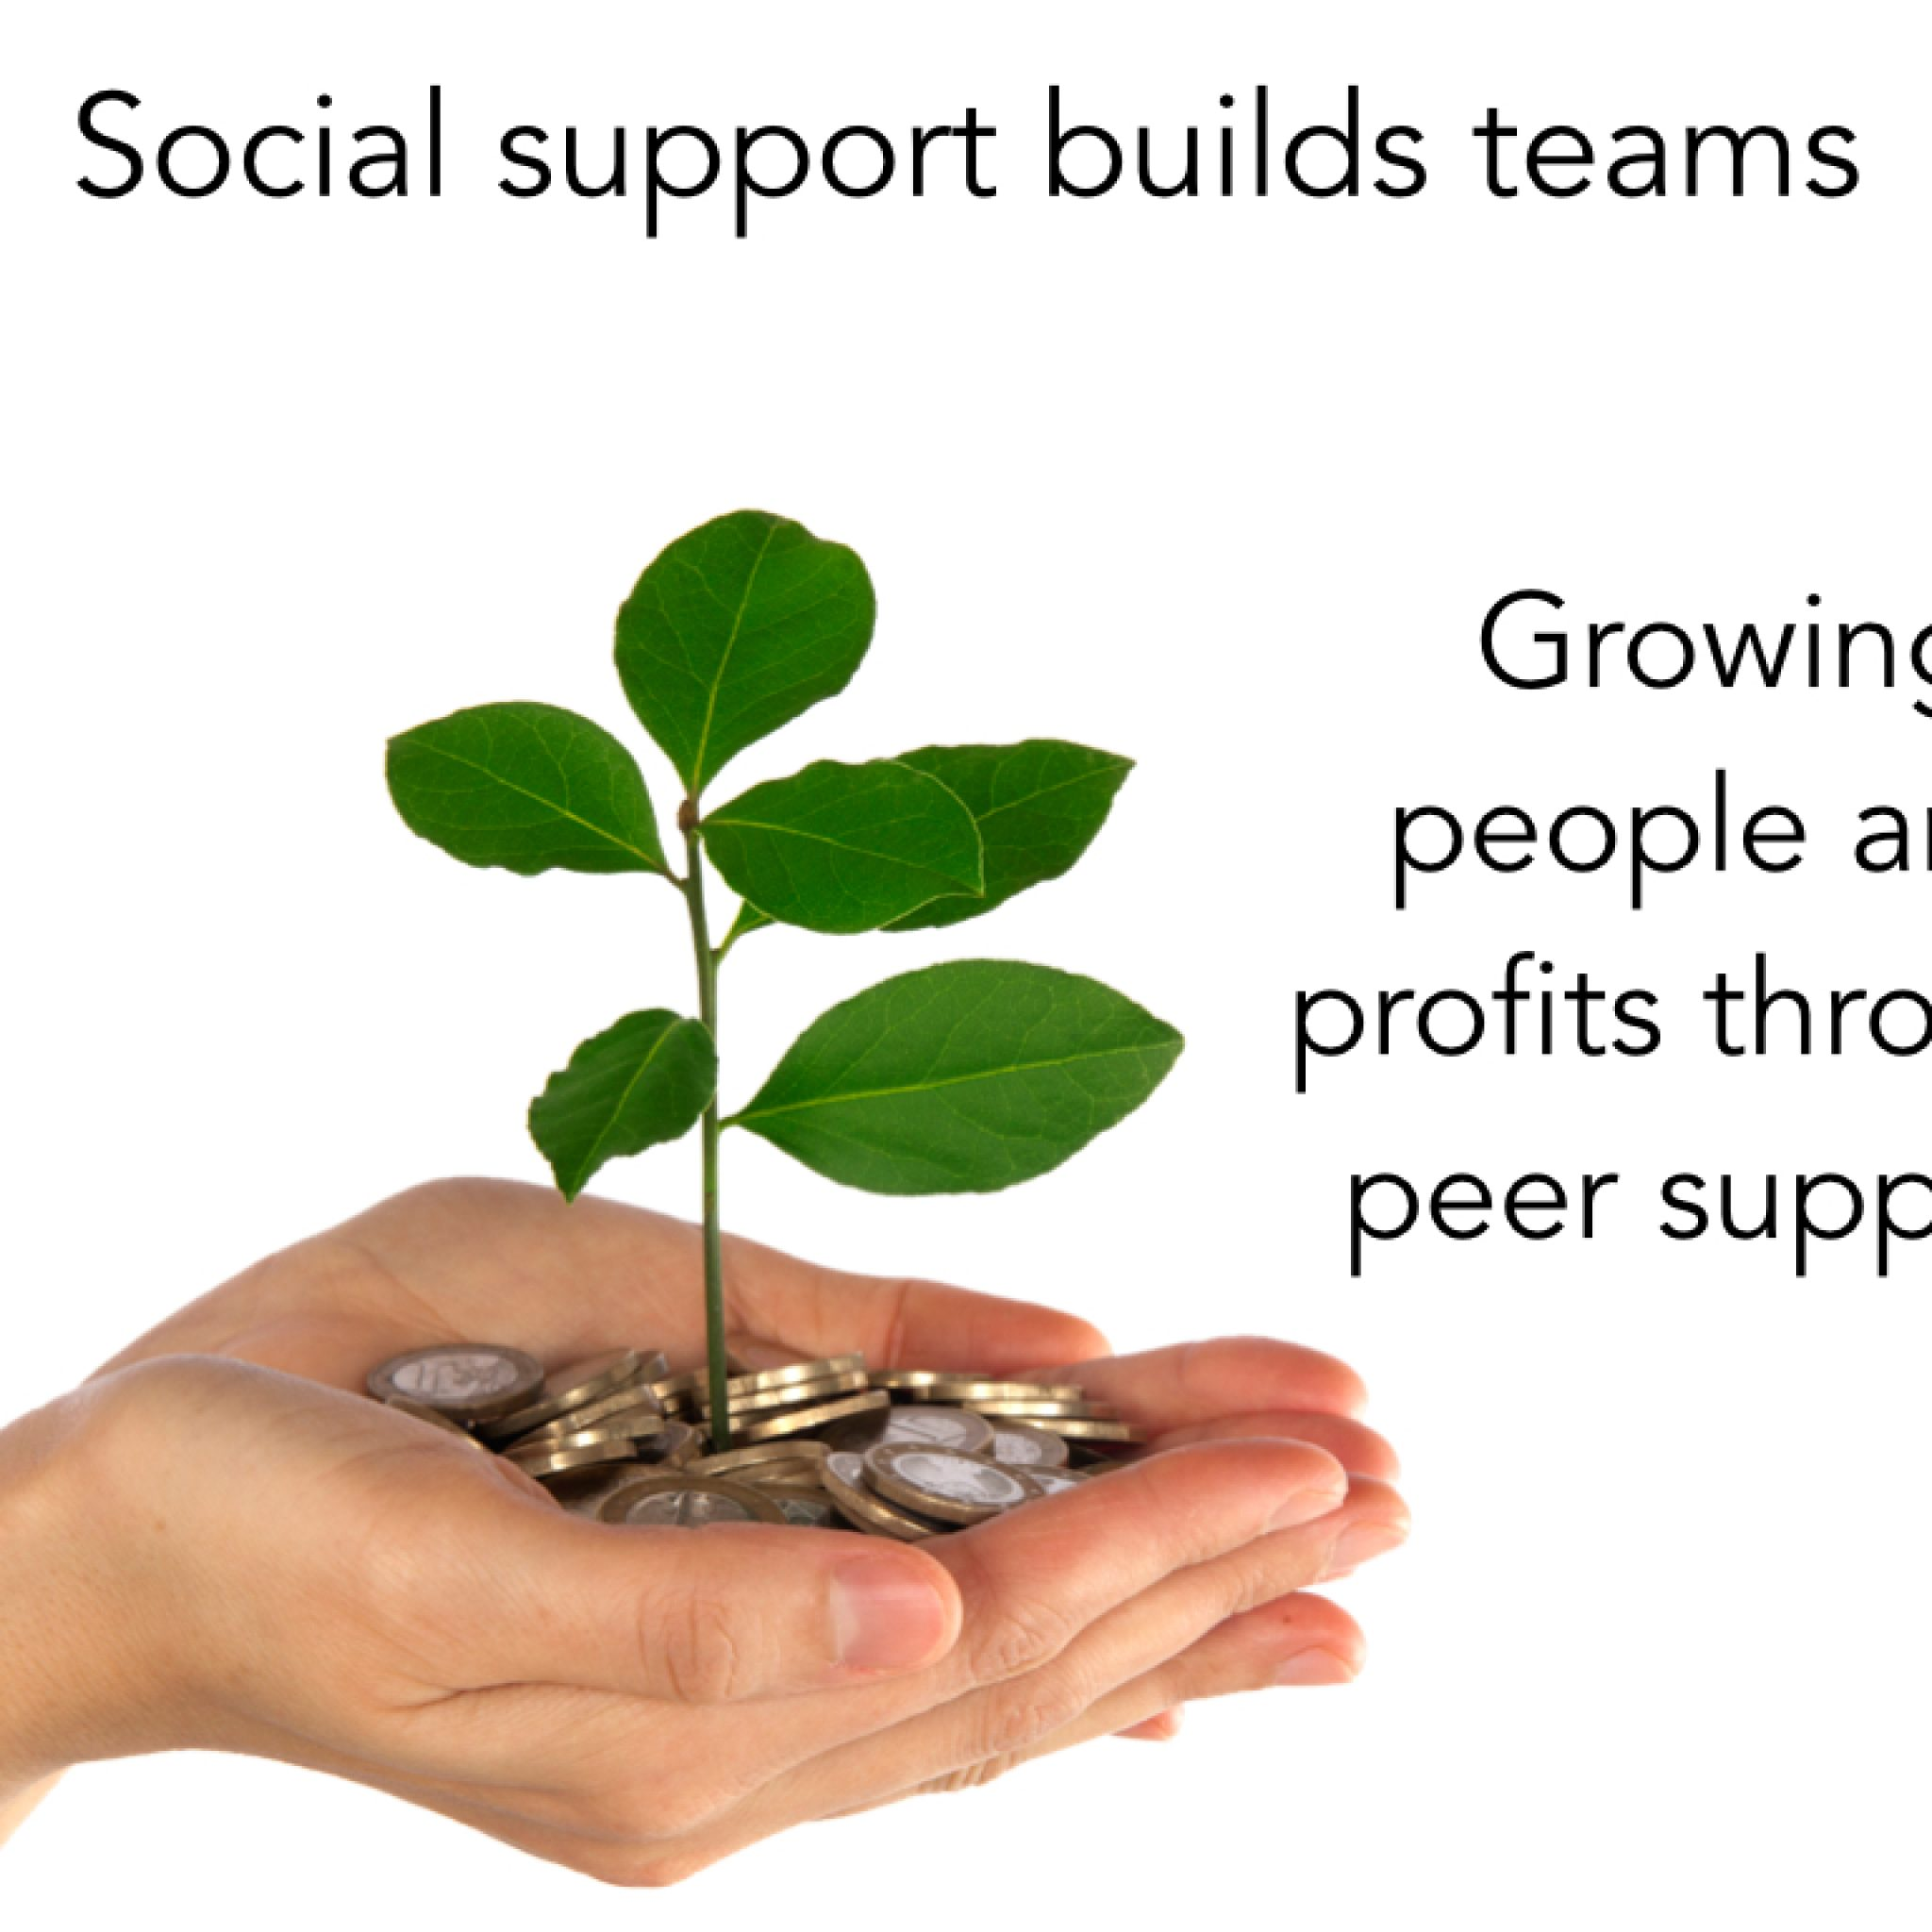 Social support builds teams